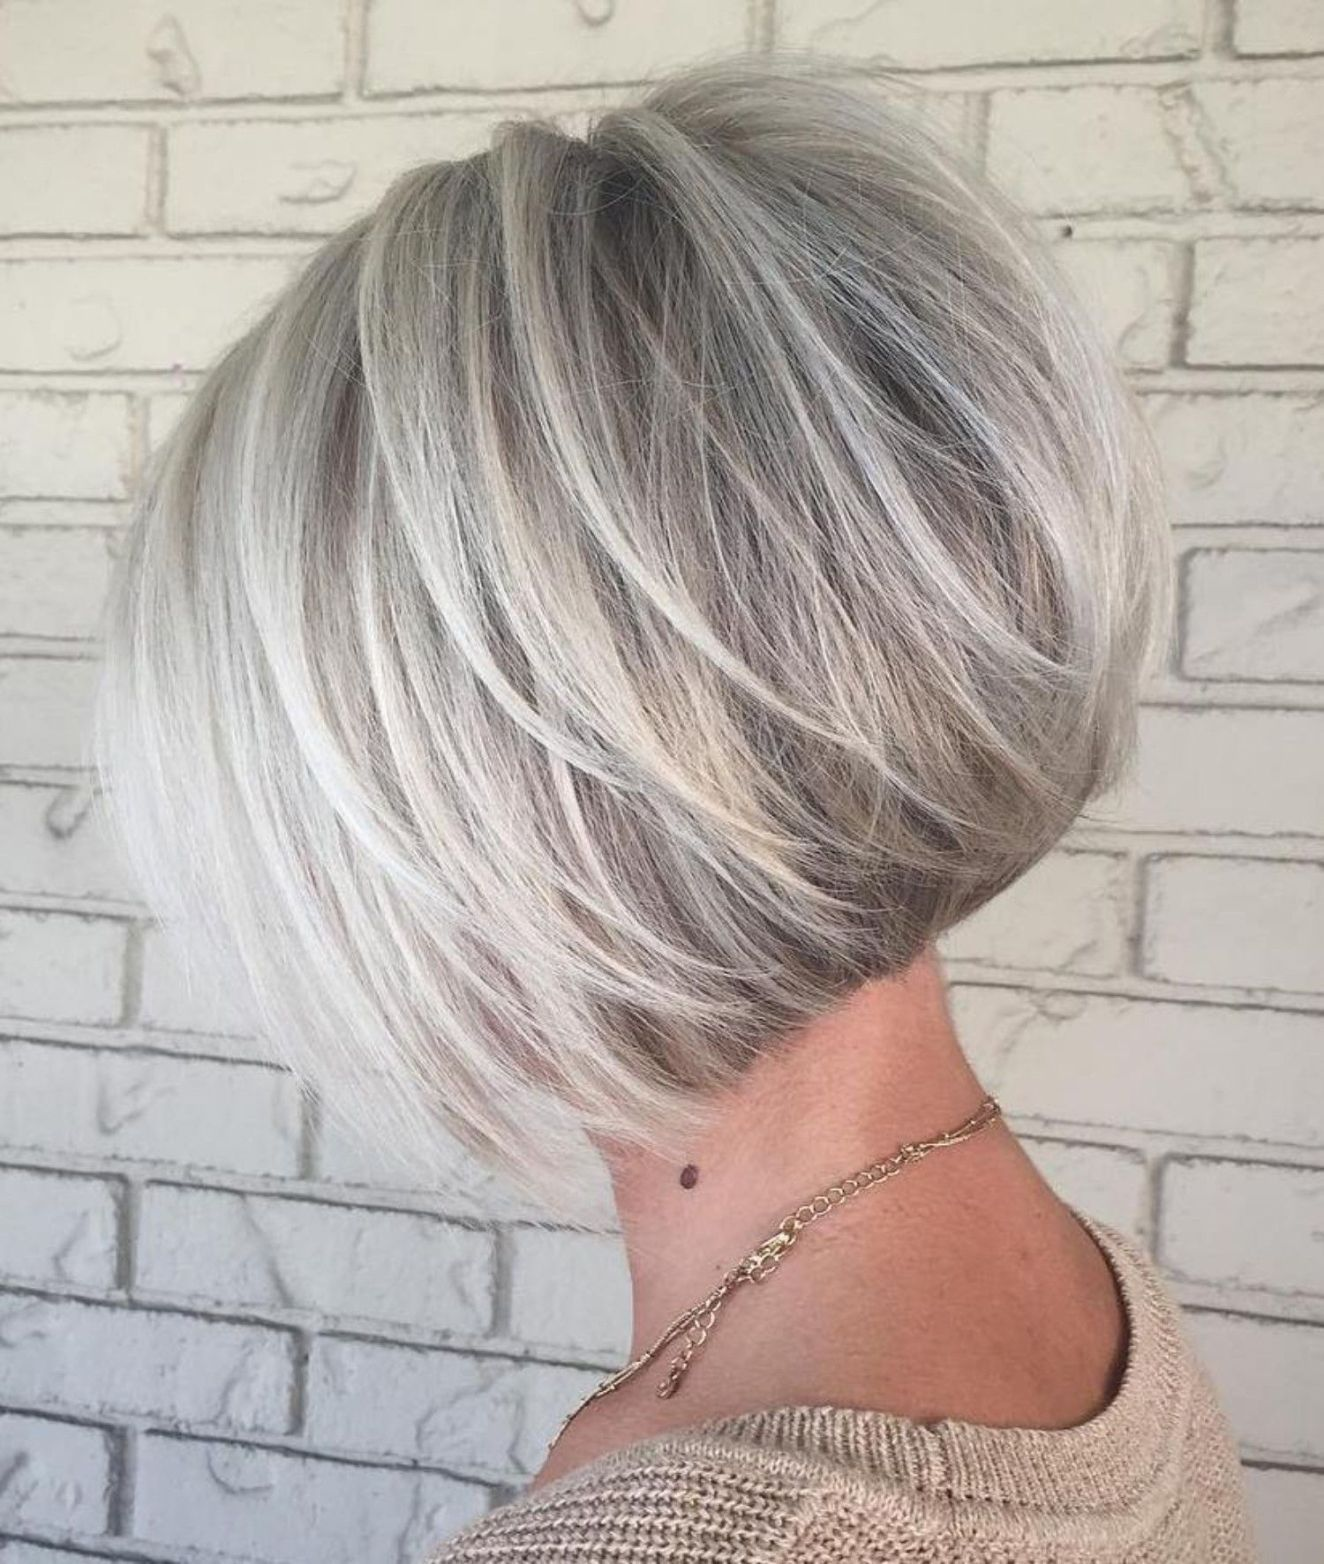 Tousled Inverted Bob In 2020 Inverted Bob Fine Hair Short Hair Styles